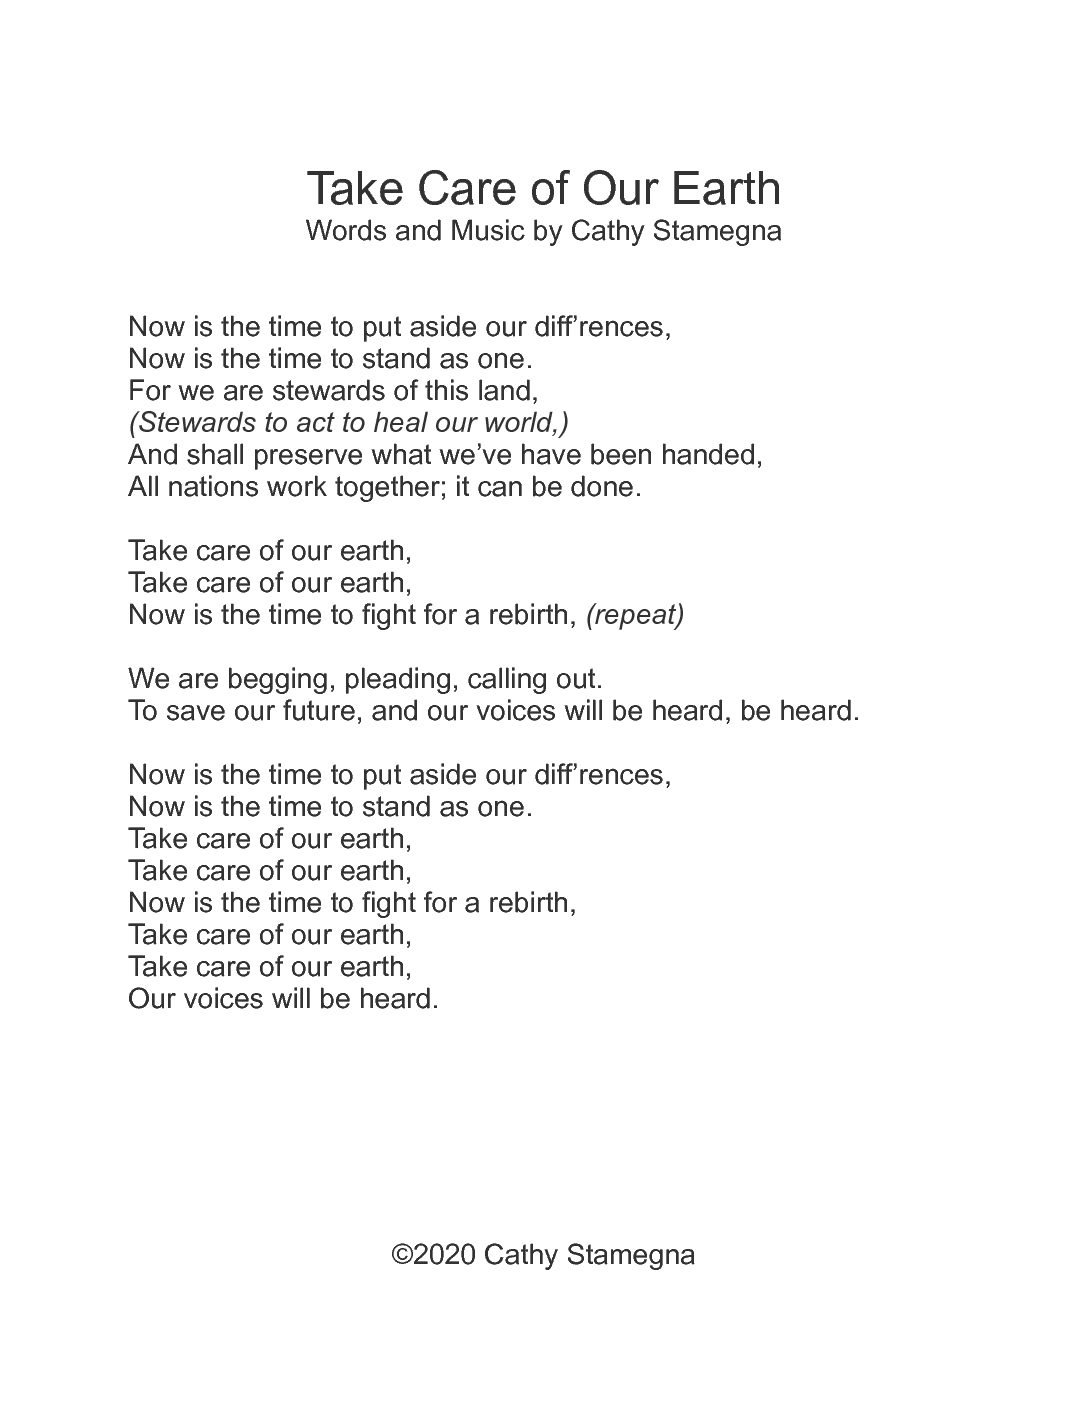 Take Care of Our Earth lyrics pdf